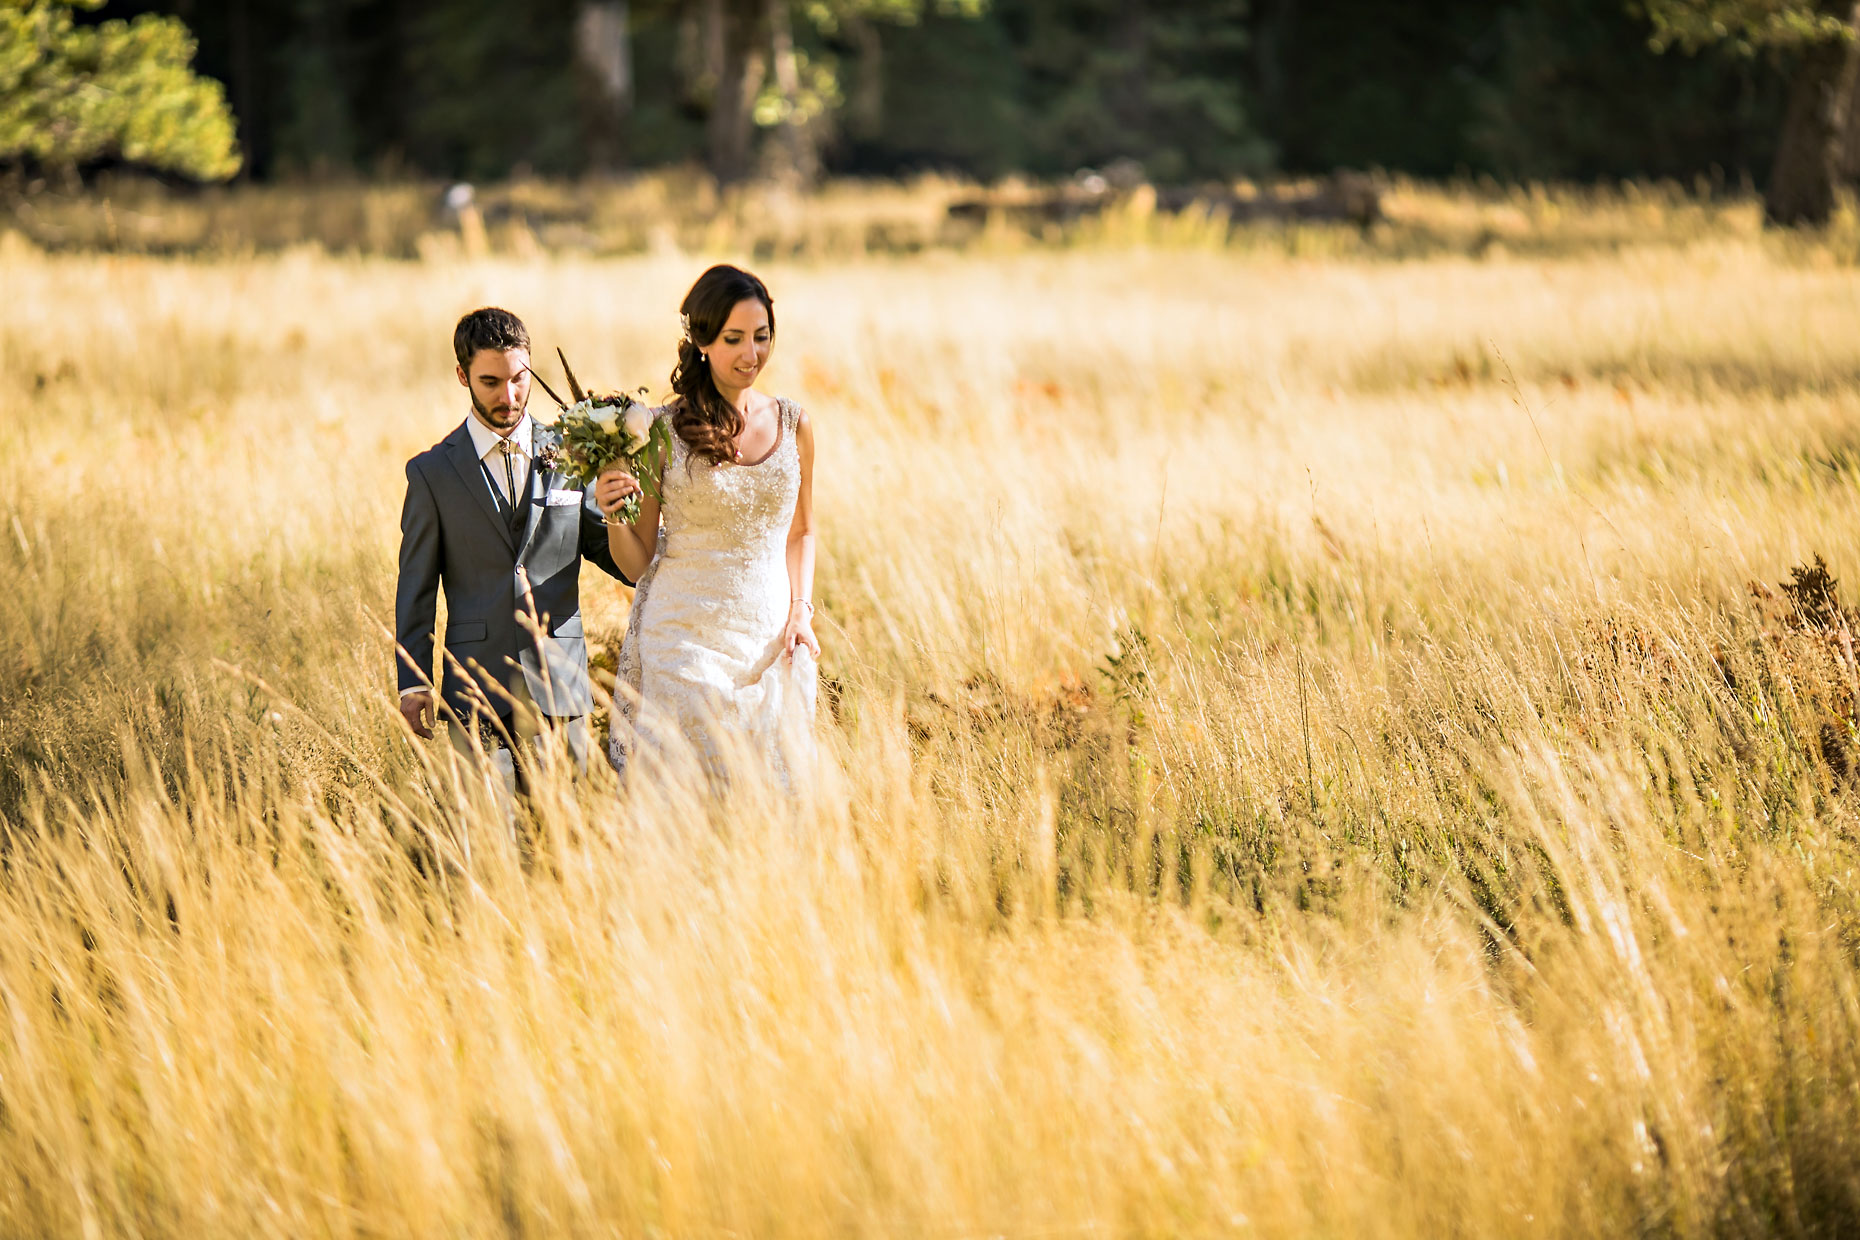 Yosemite wedding & elopement photographer.